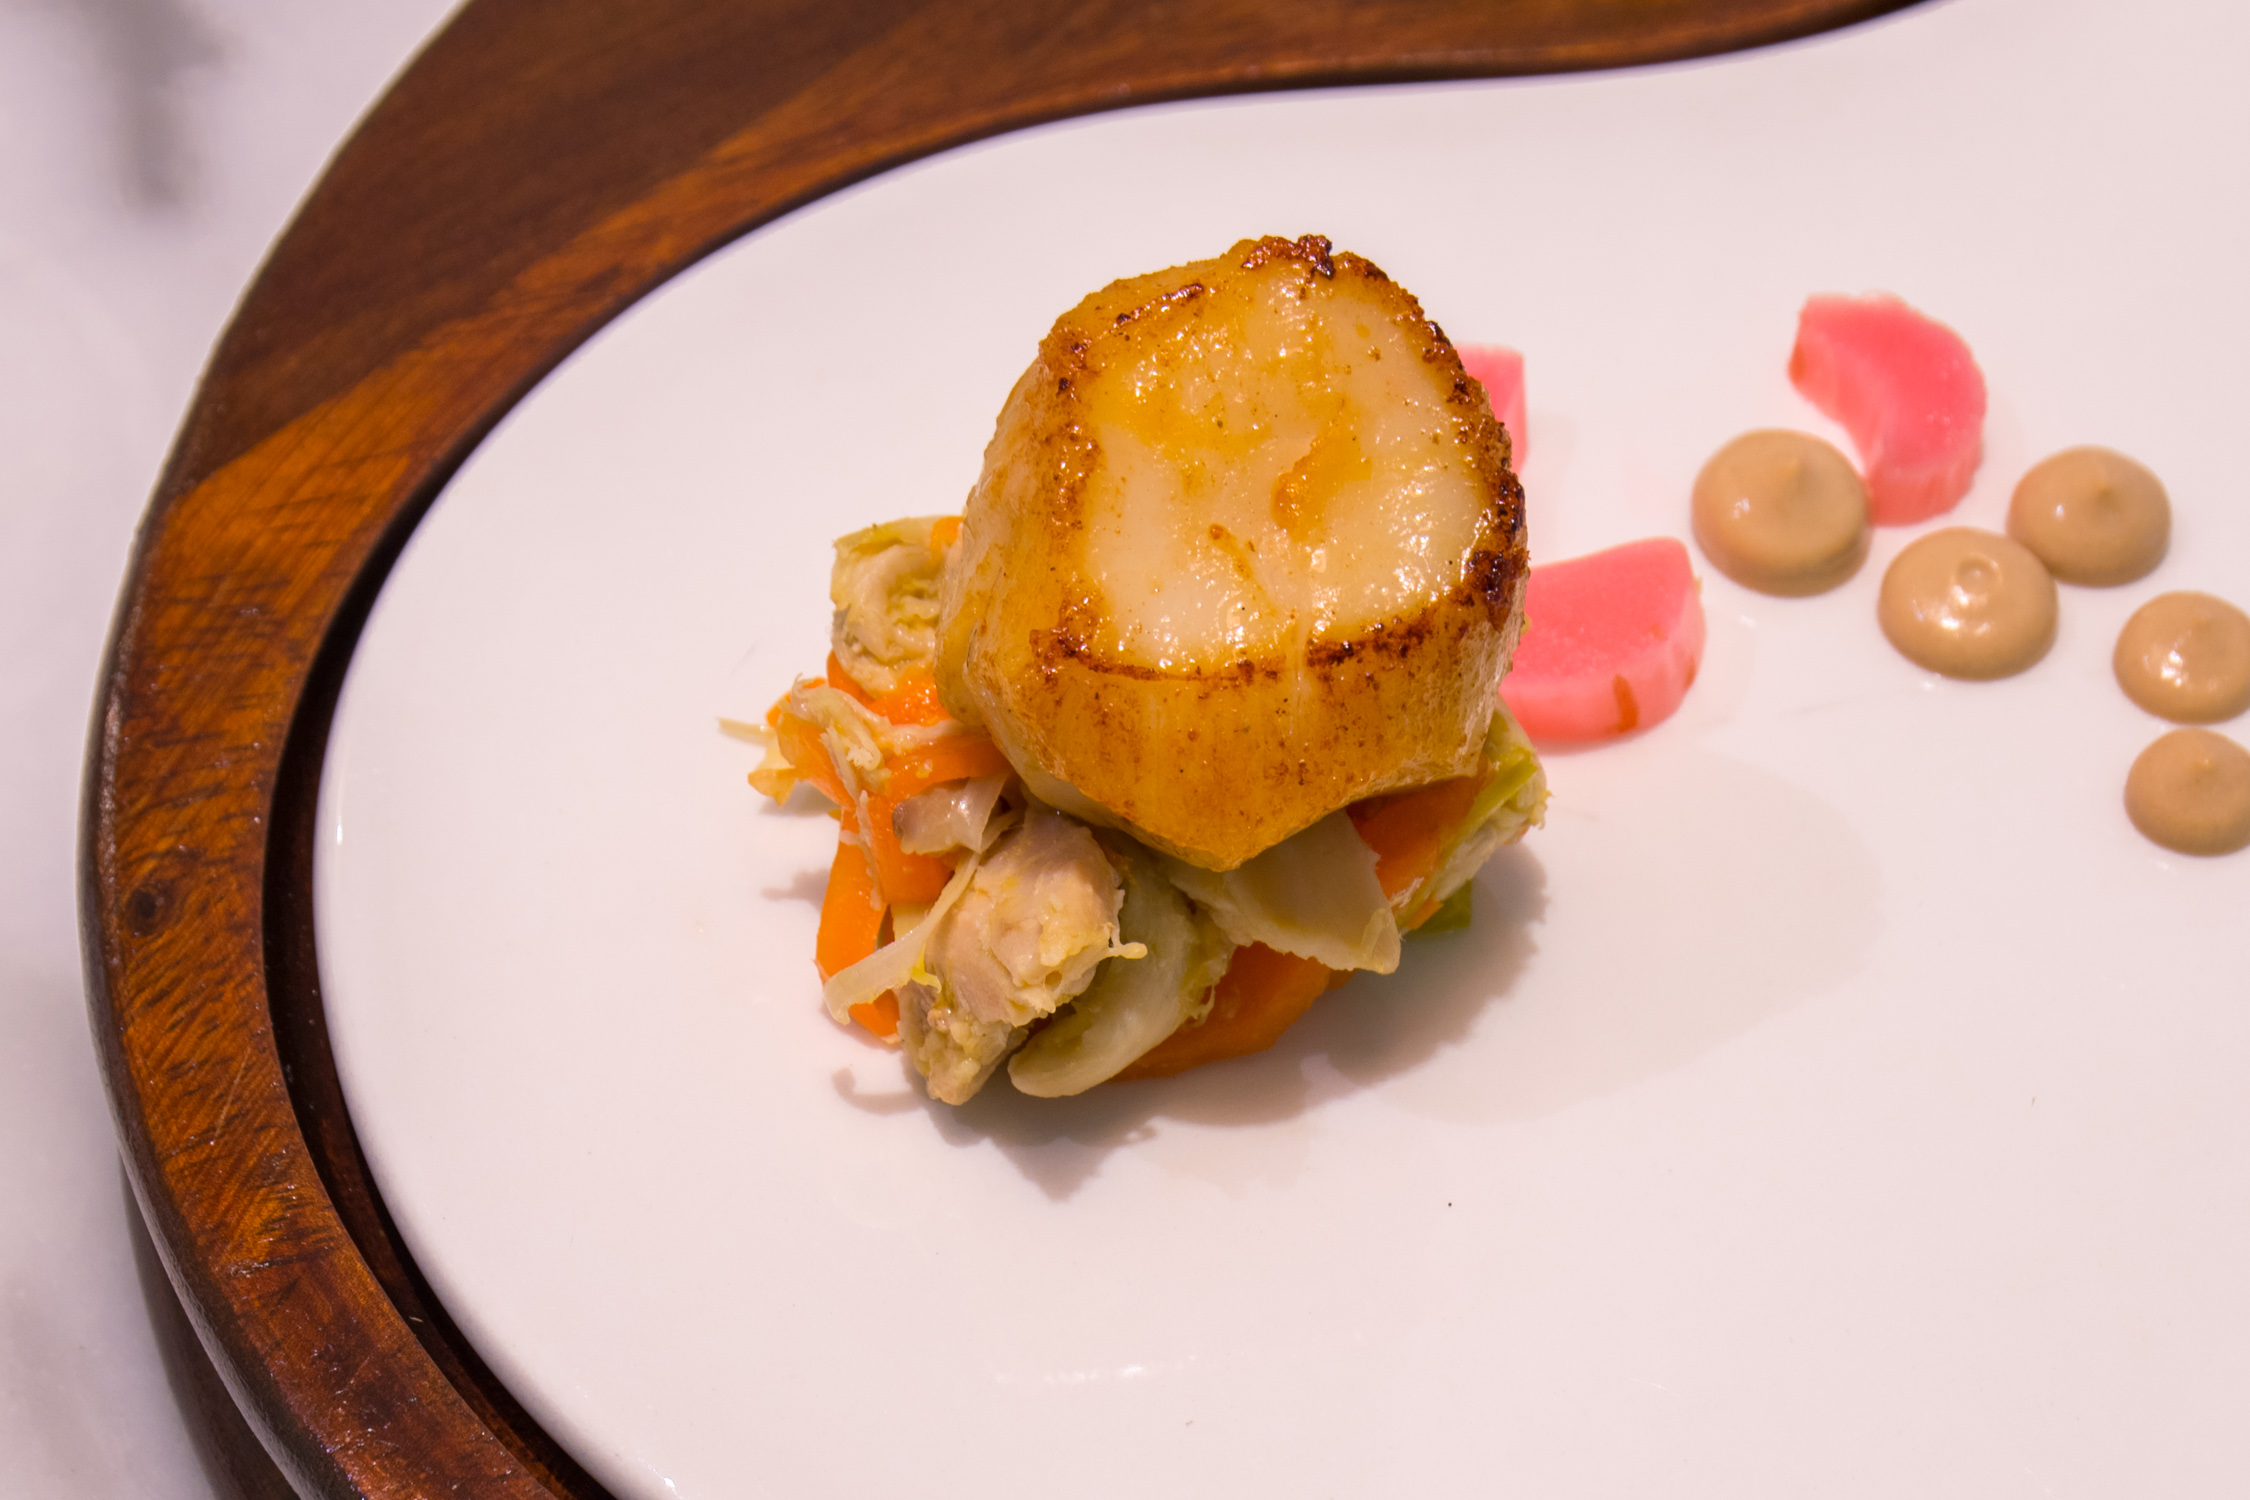 Dining at the Brasserie, inside The Marker...a suprising twist of scallops and rabbit